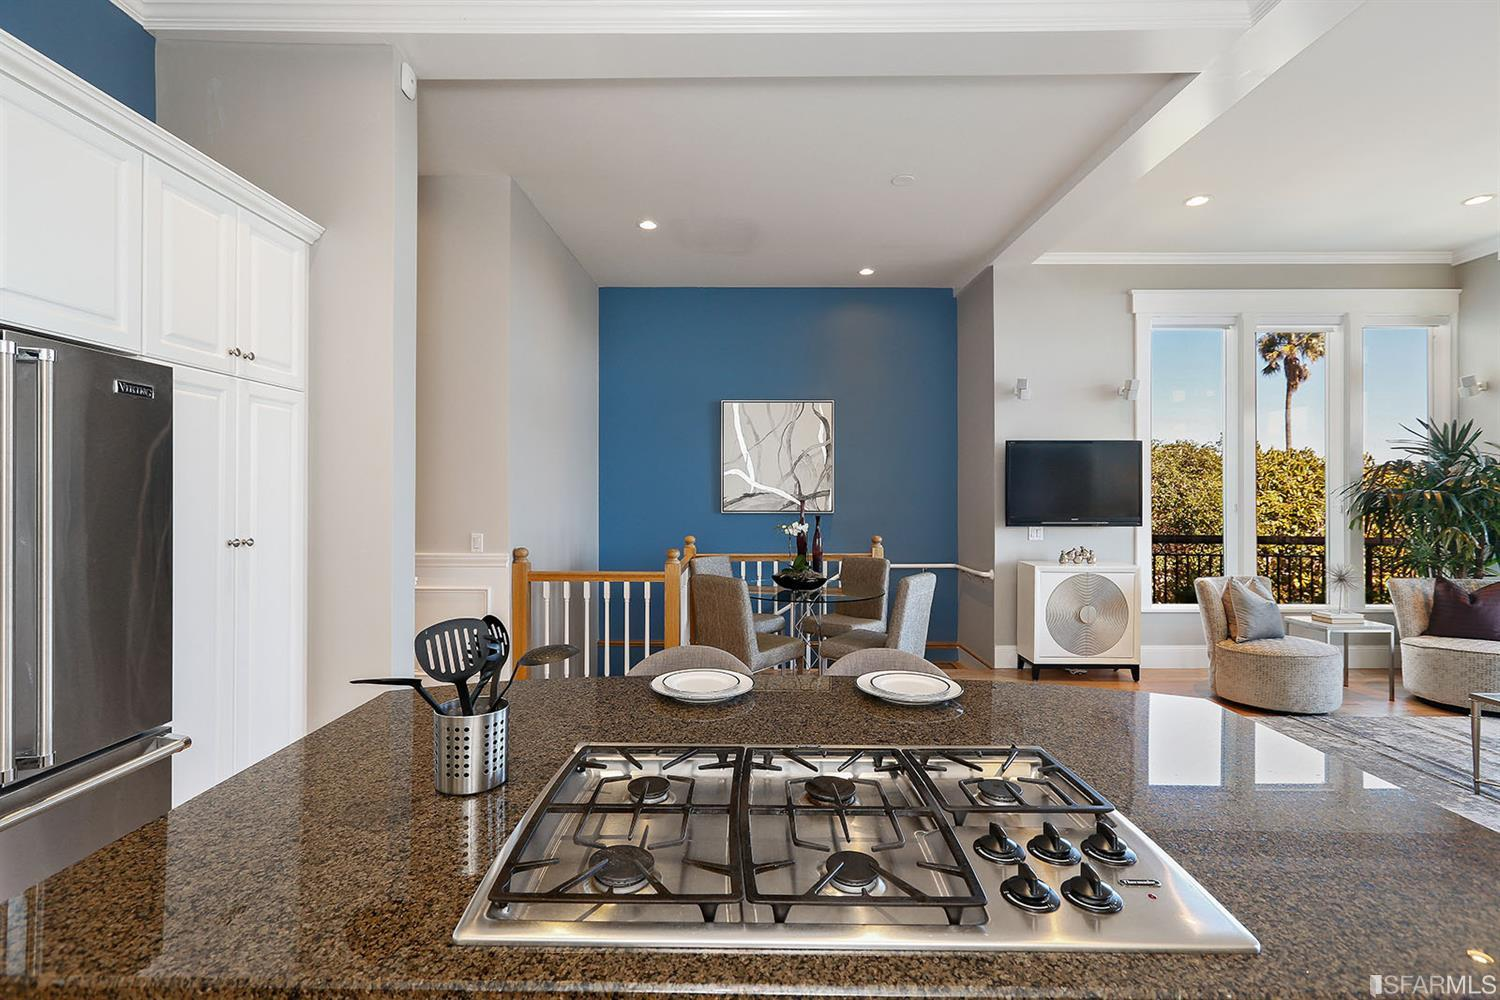 Additional photo for property listing at 1183 Dolores Street  SAN FRANCISCO, CALIFORNIA 94110